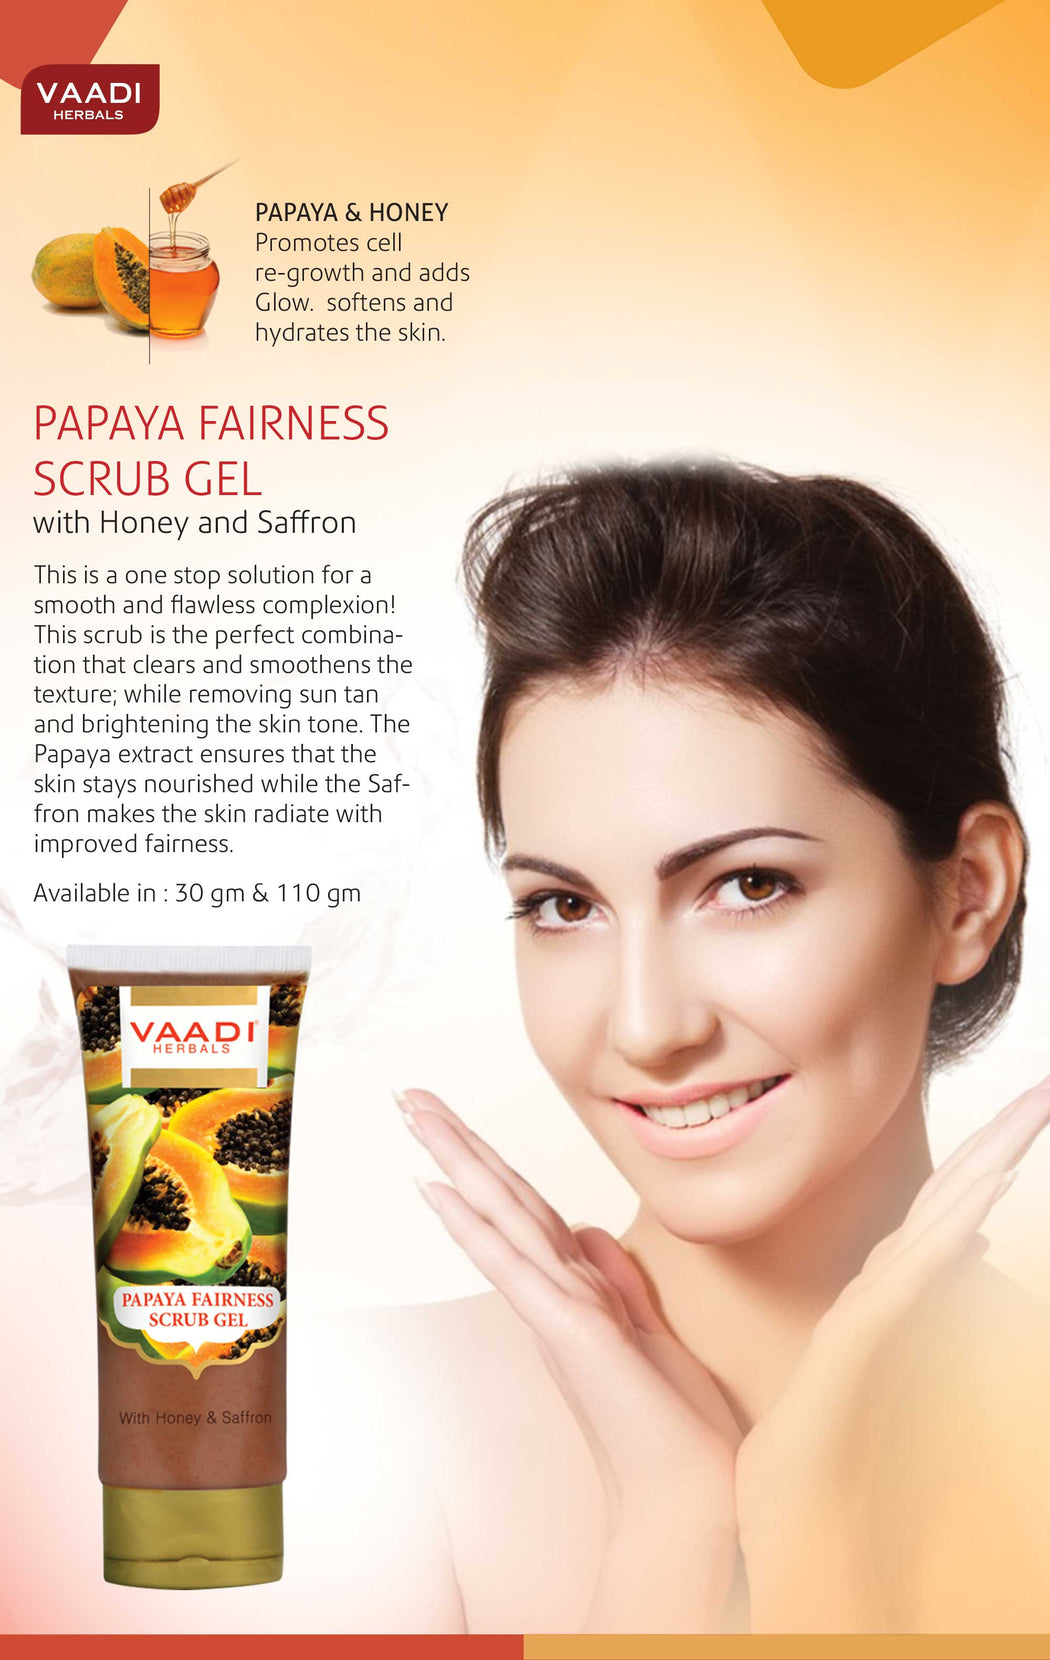 Papaya Fairness Scrub Gel with Honey & Saffron (110 gms)